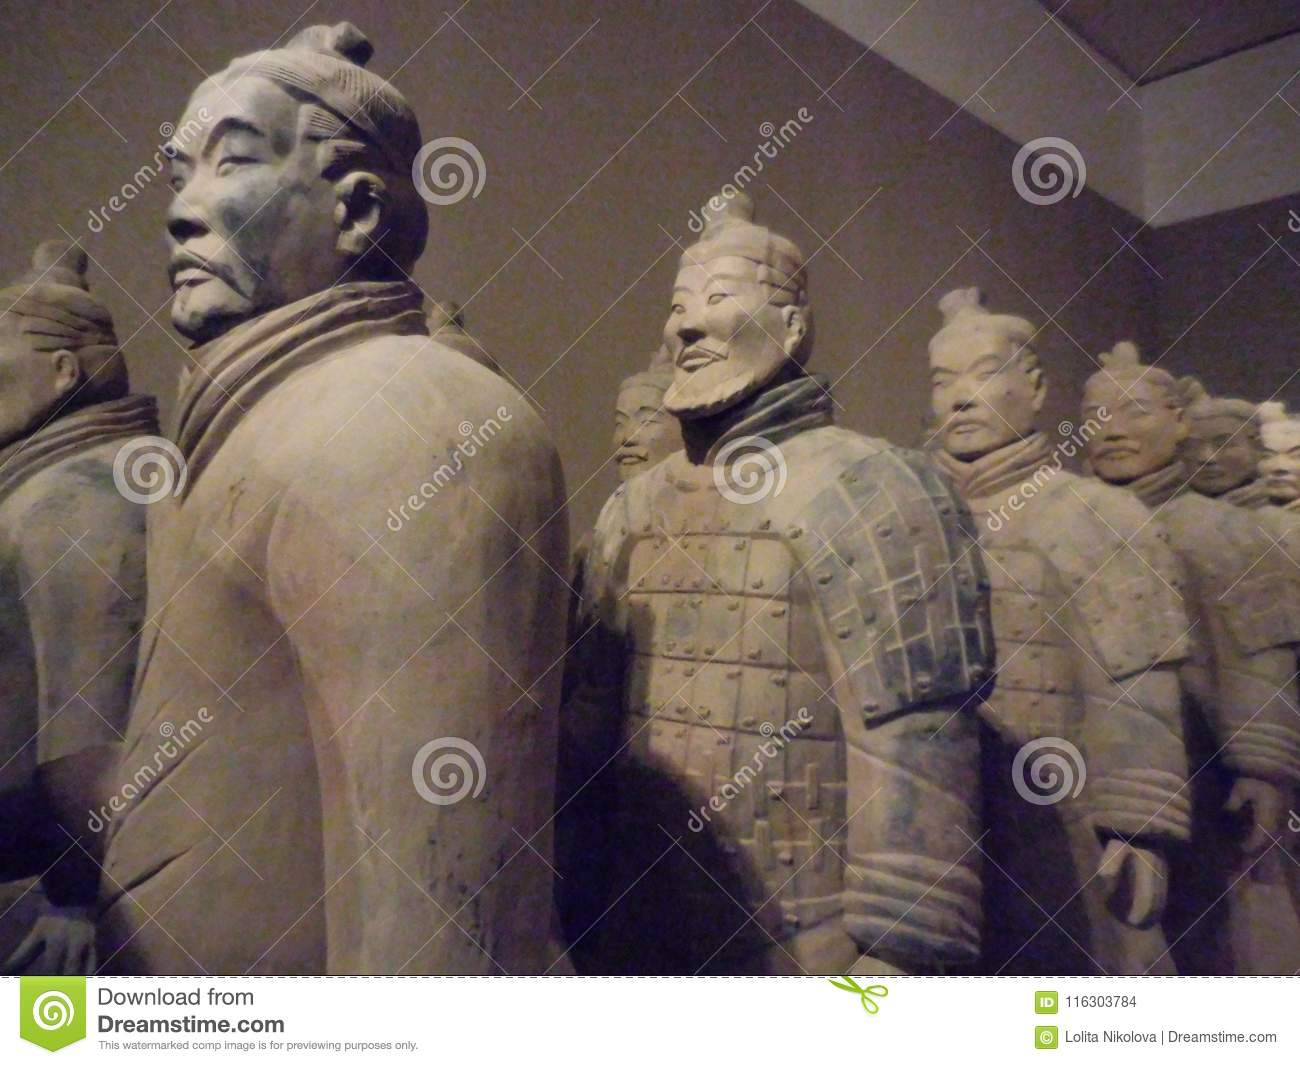 National Museum of Art, Osaka, Japan. The Great Terracotta Army of China`s First Emperor. July 5 - October 2, 2016.